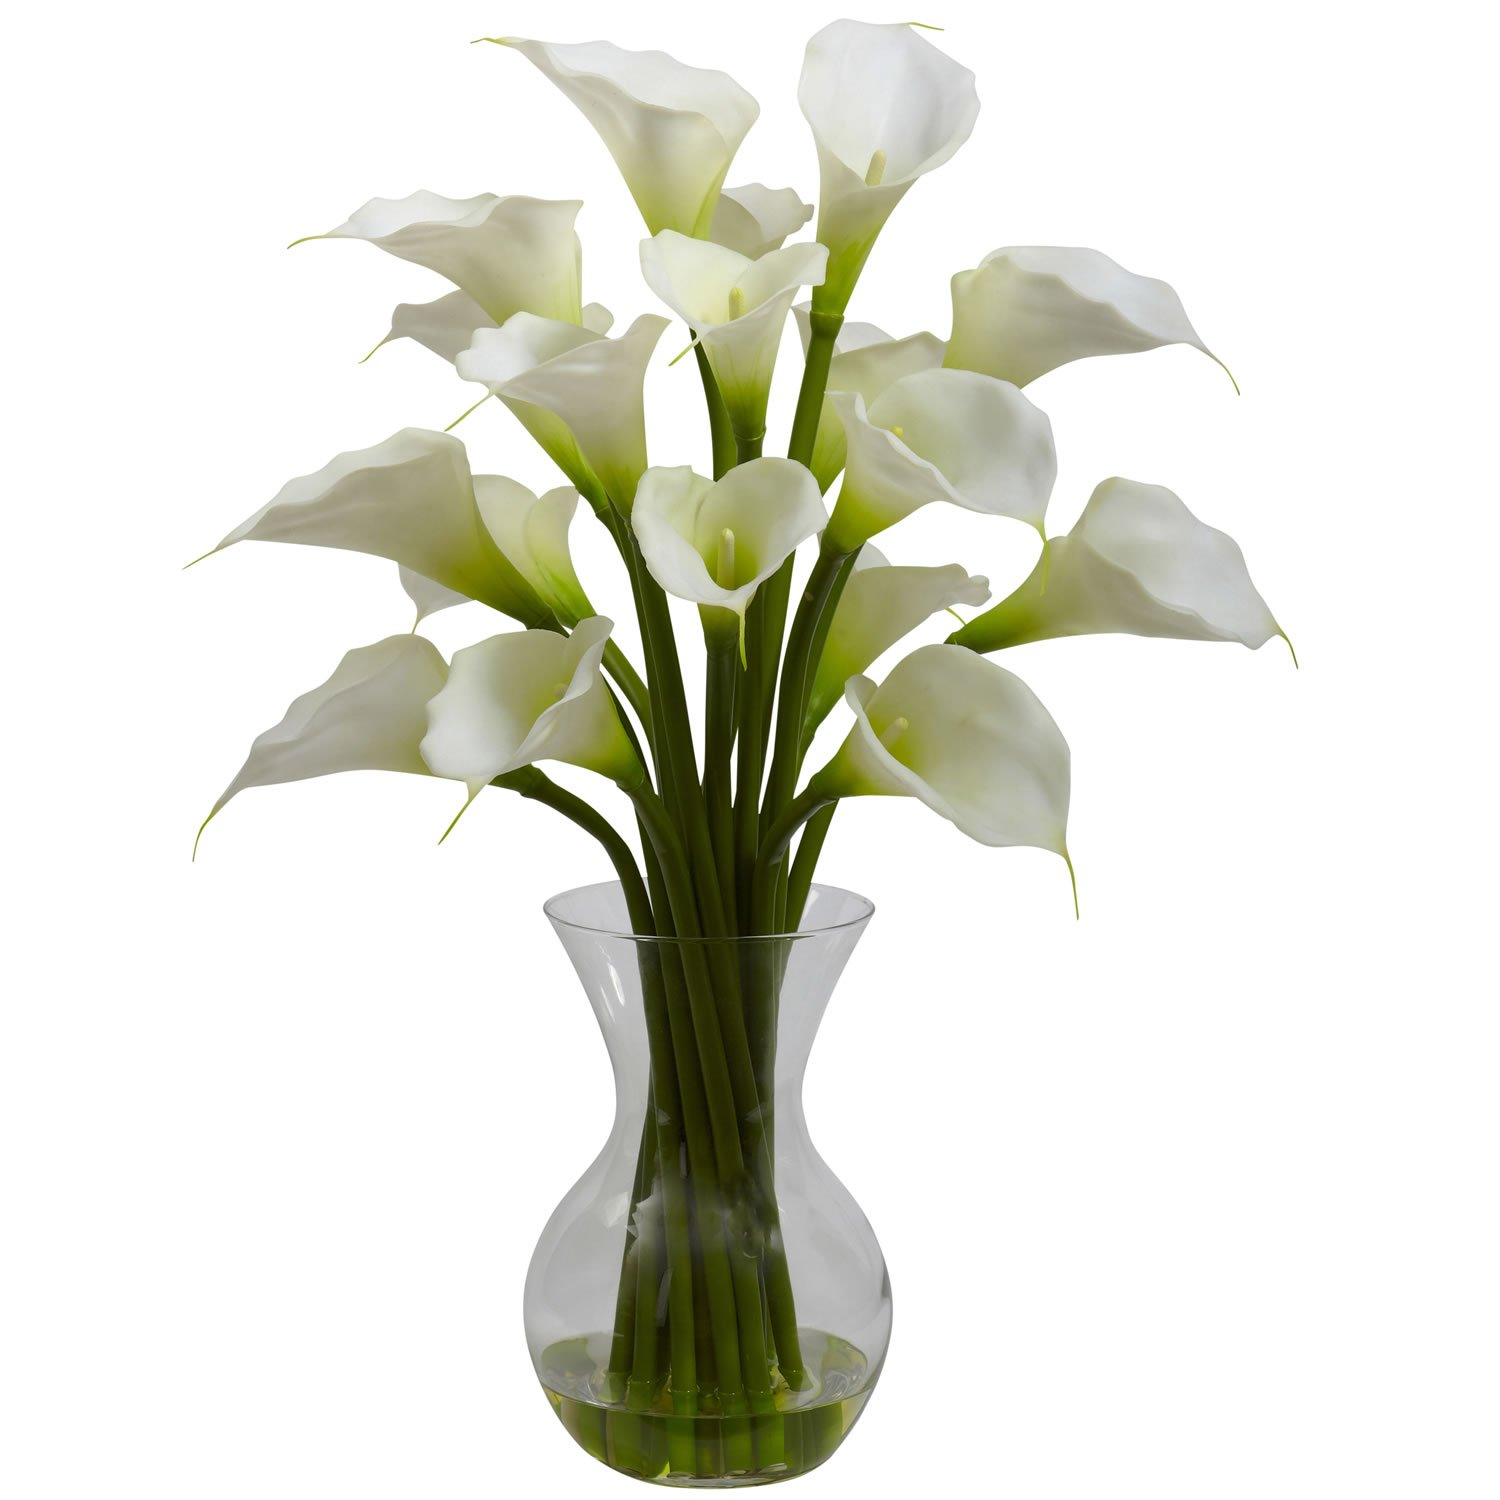 Nearly Natural Home Indoor Decorative Tabletop Galla Calla Lily With Vase Arrangement Cream by Nearly Natural